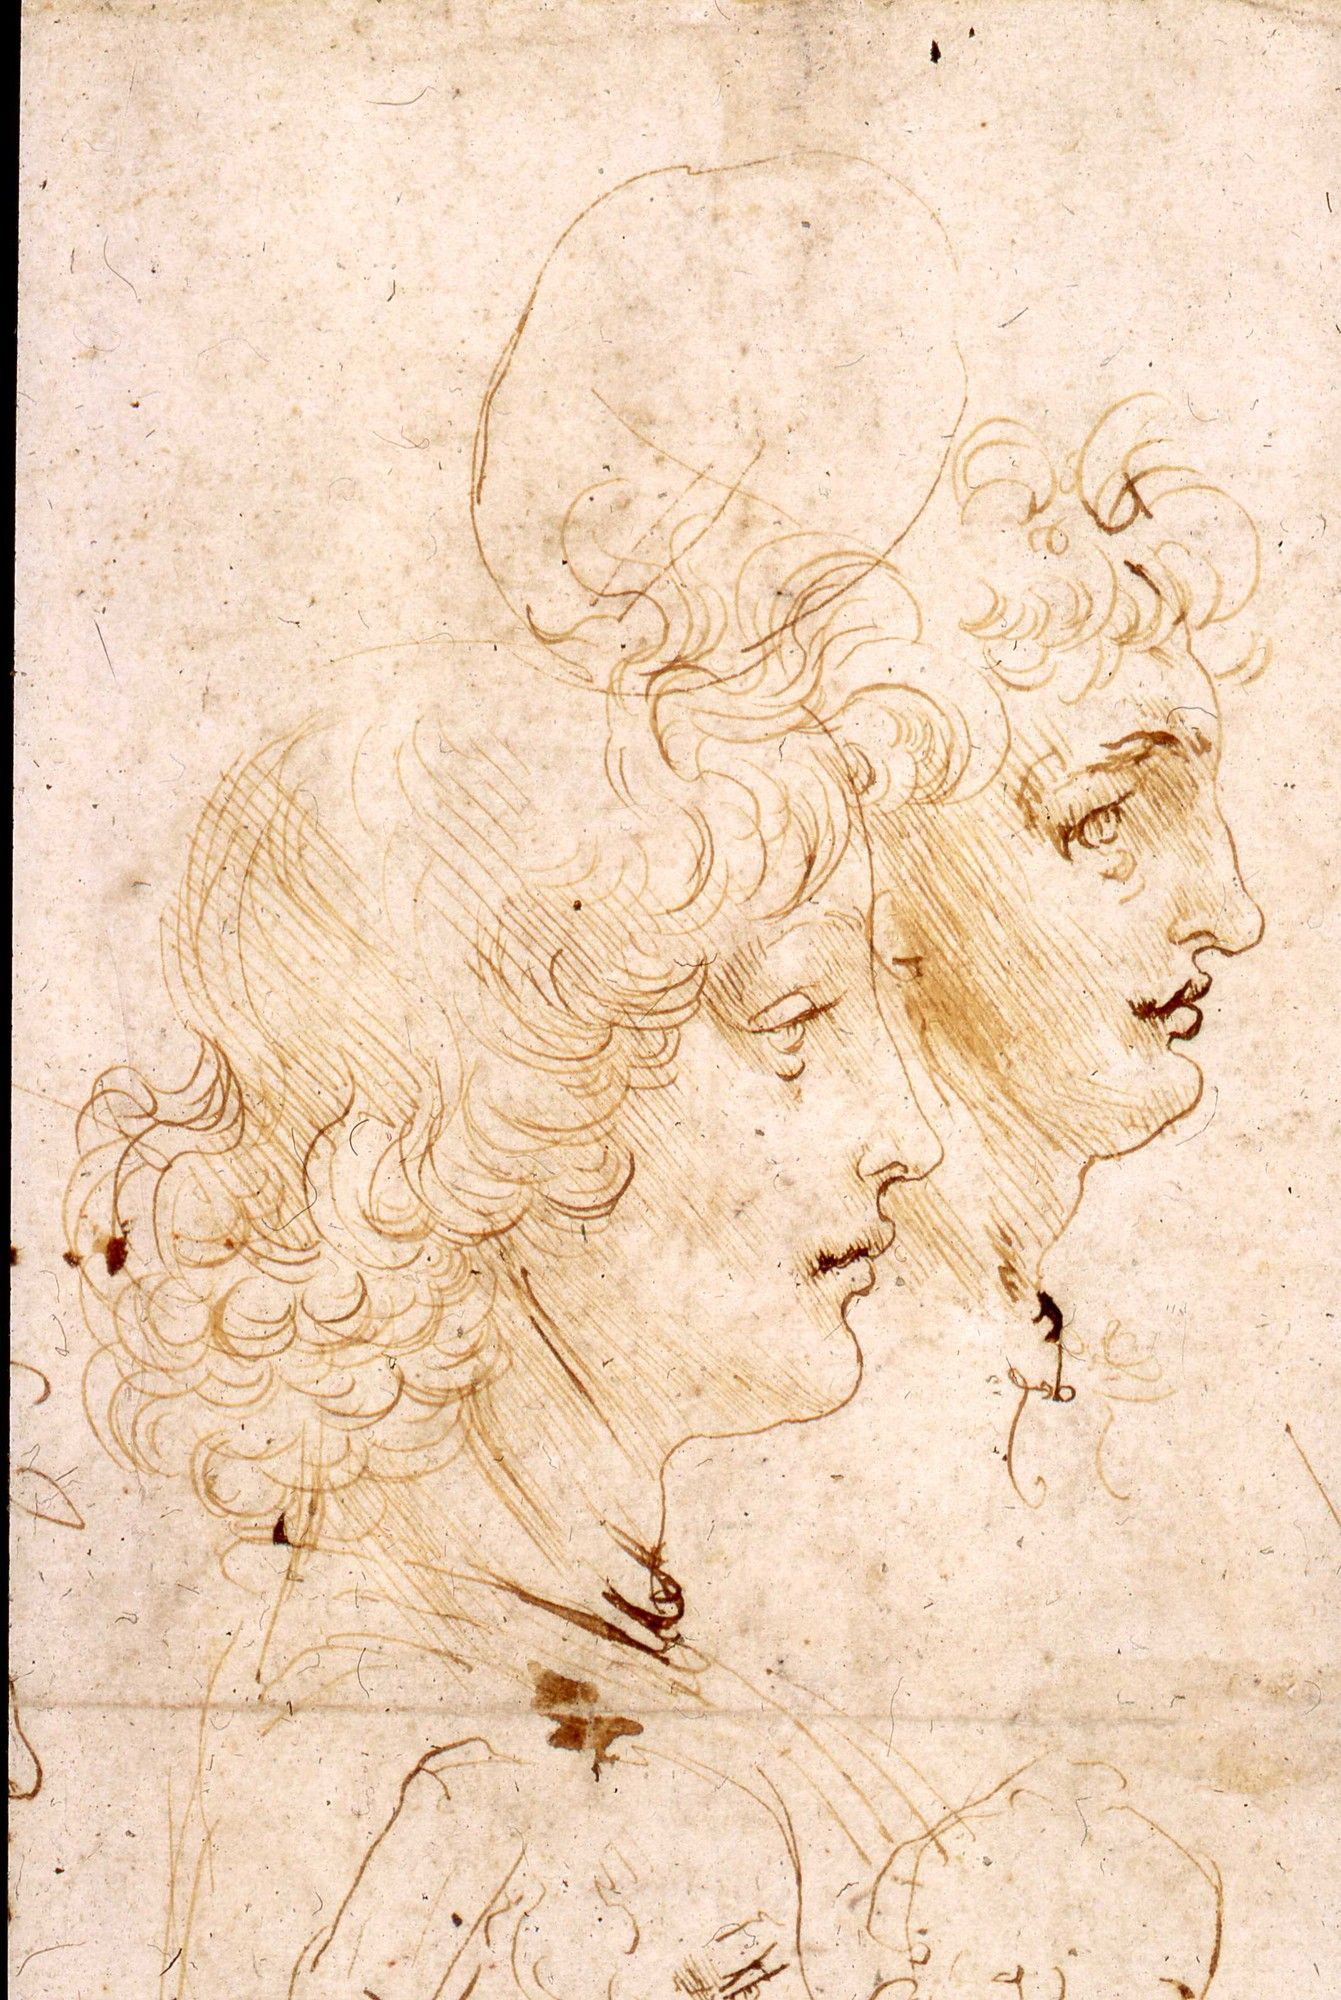 michelangelo drawing madonna and child 1525 - HD1341×2000